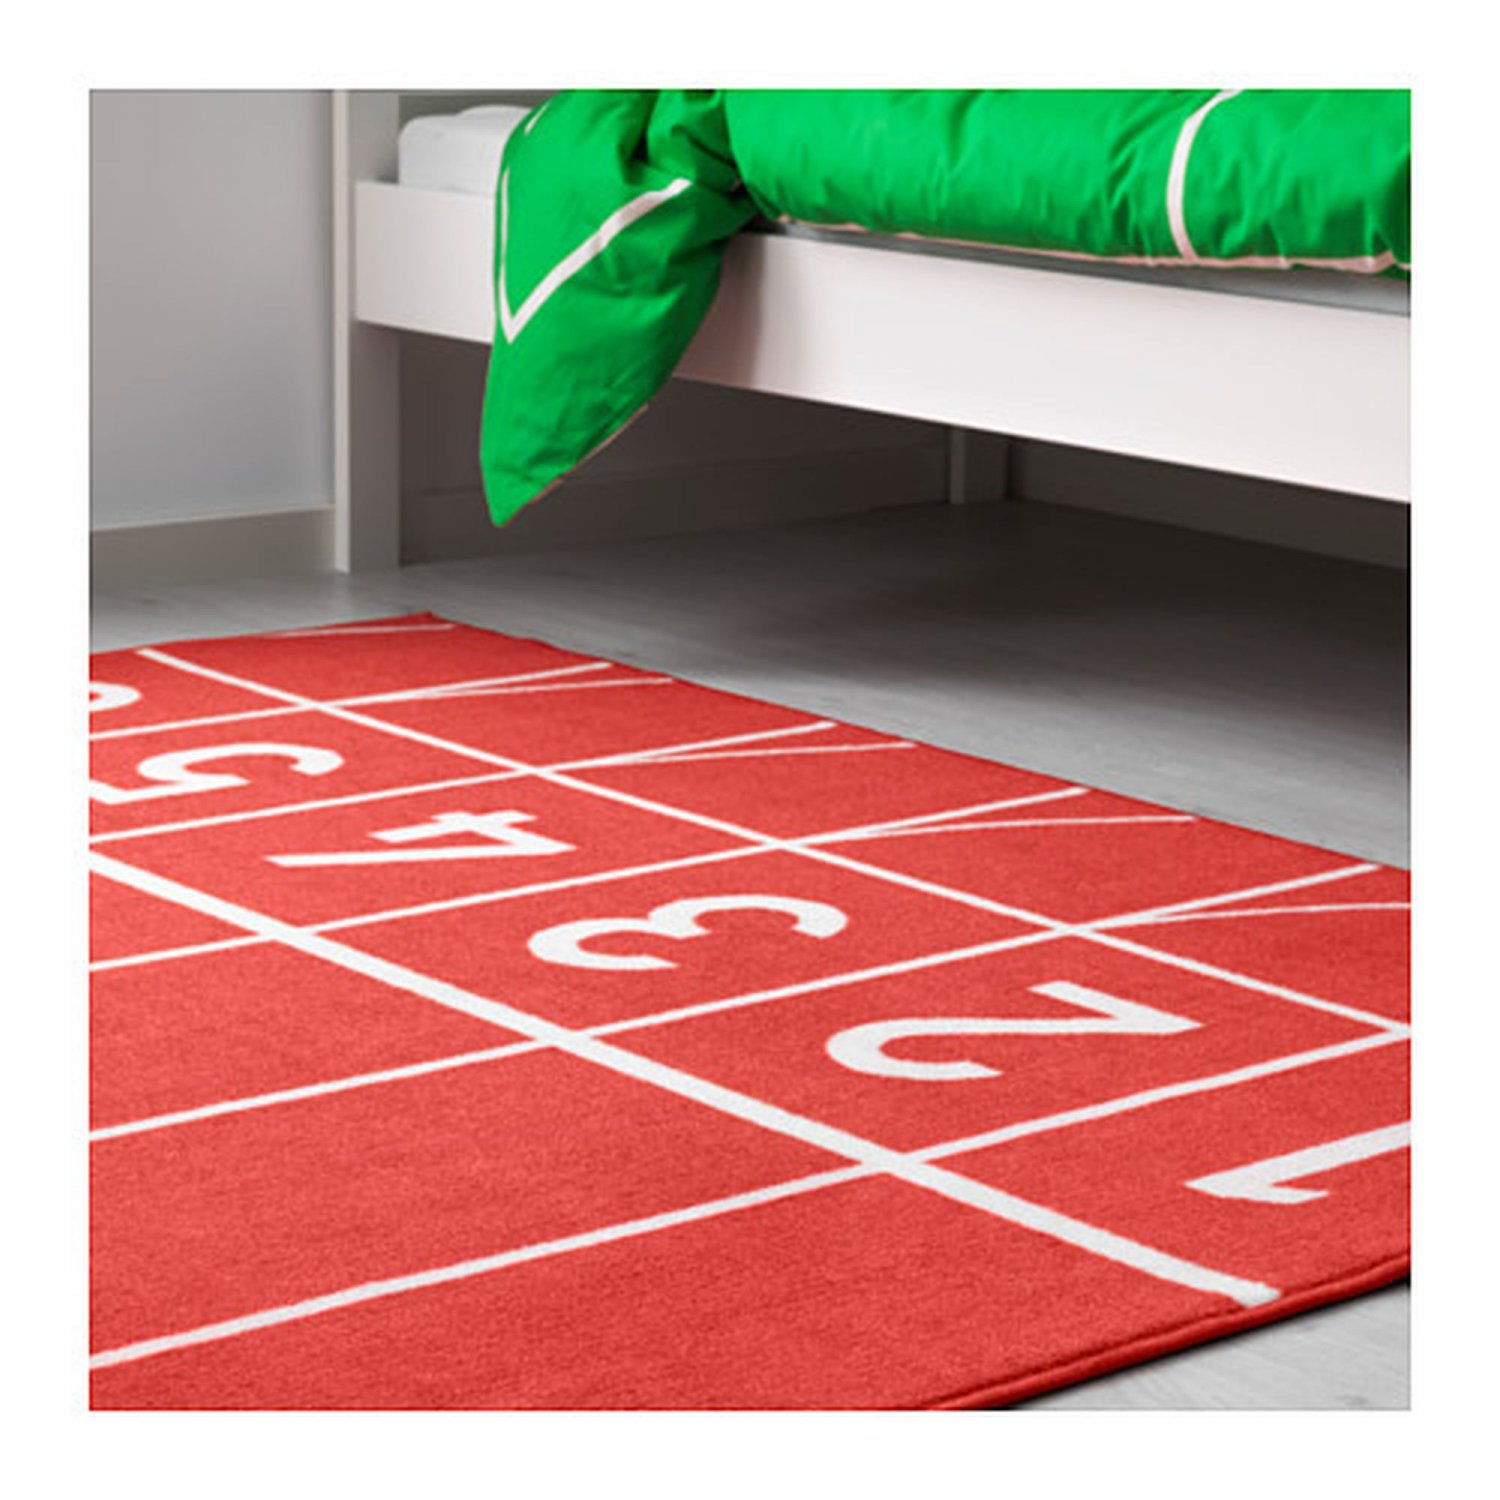 Ikea Kitchen Rugs Canada: IKEA Springa Area Throw RUG Mat RED Kids Decor Track And